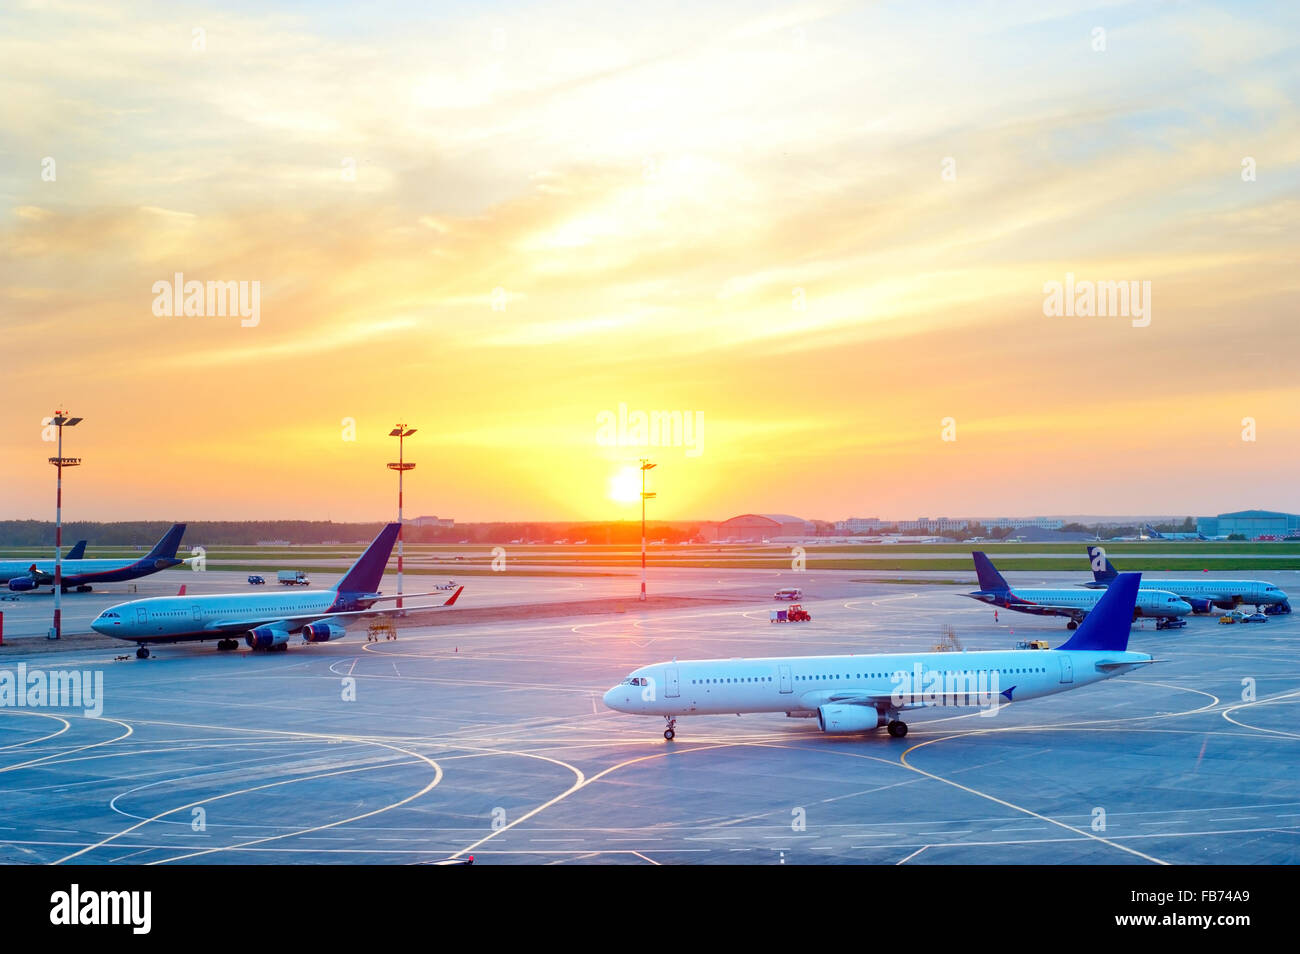 View of Airplanes at airport in the beautiful sunset - Stock Image